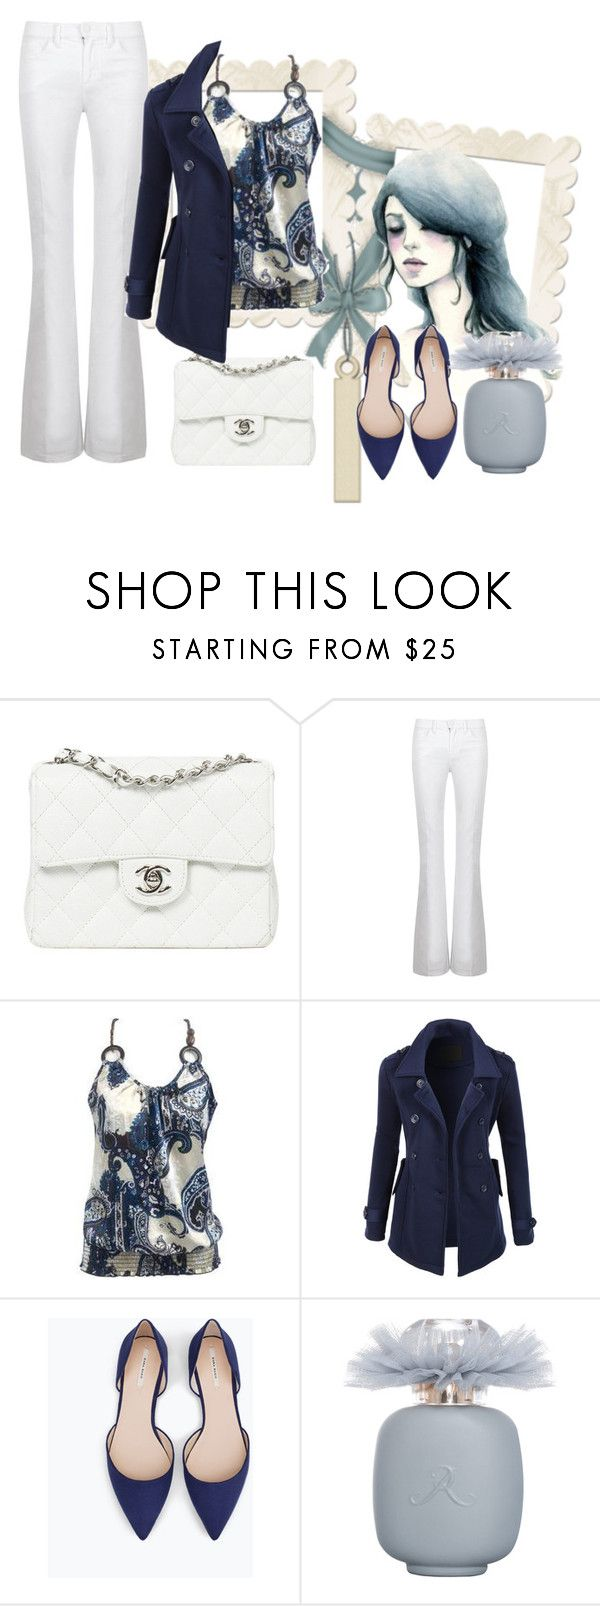 """""""Untitled #135"""" by jovana-p-com ❤ liked on Polyvore featuring Valentino, Tory Burch, LE3NO, Zara, Les Parfums De Rosine, women's clothing, women, female, woman and misses"""